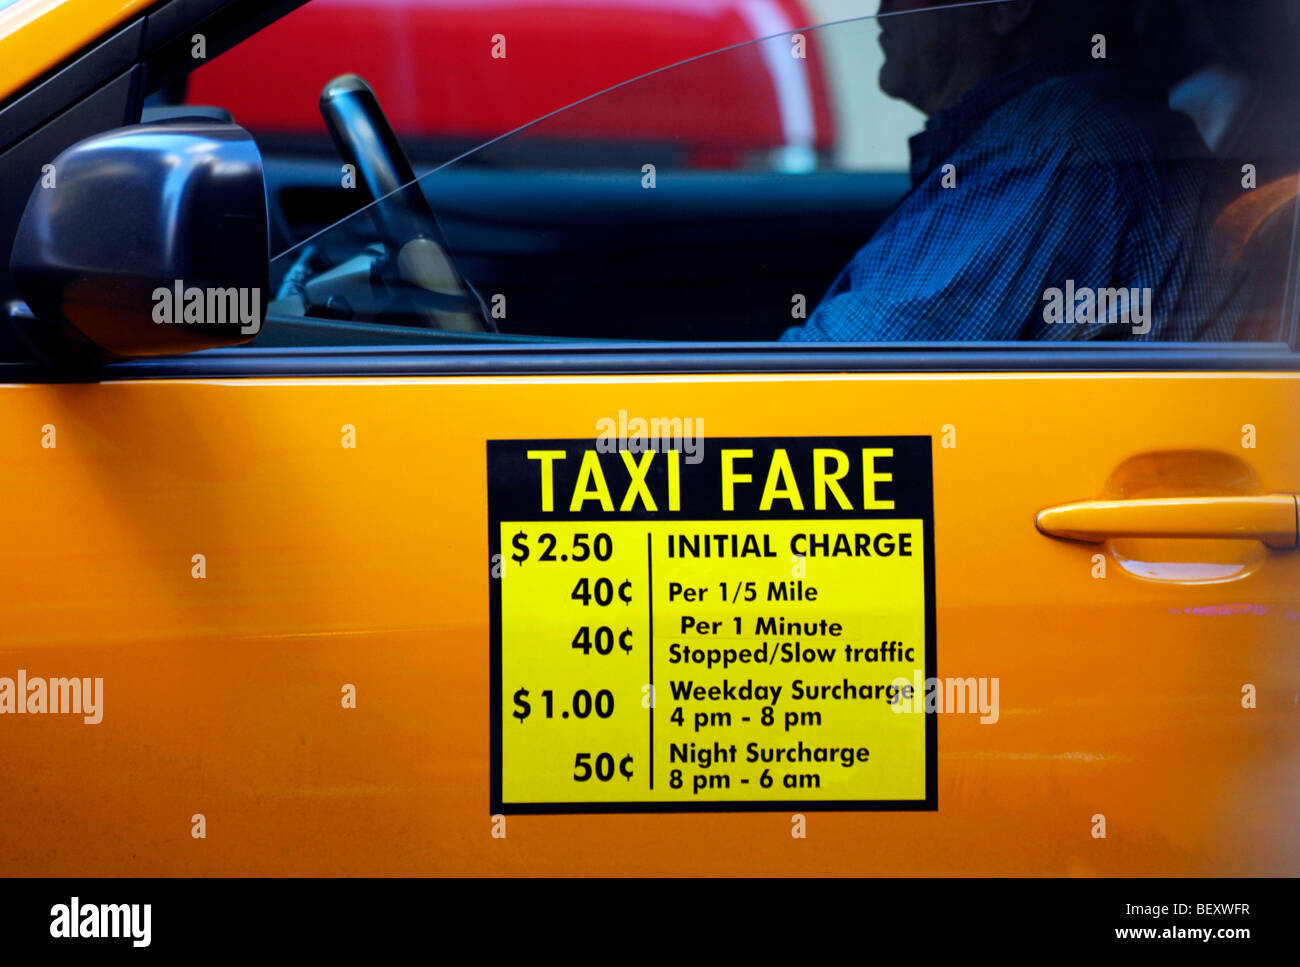 Fare information on the door of a yellow New York City taxi cab. - Stock Image